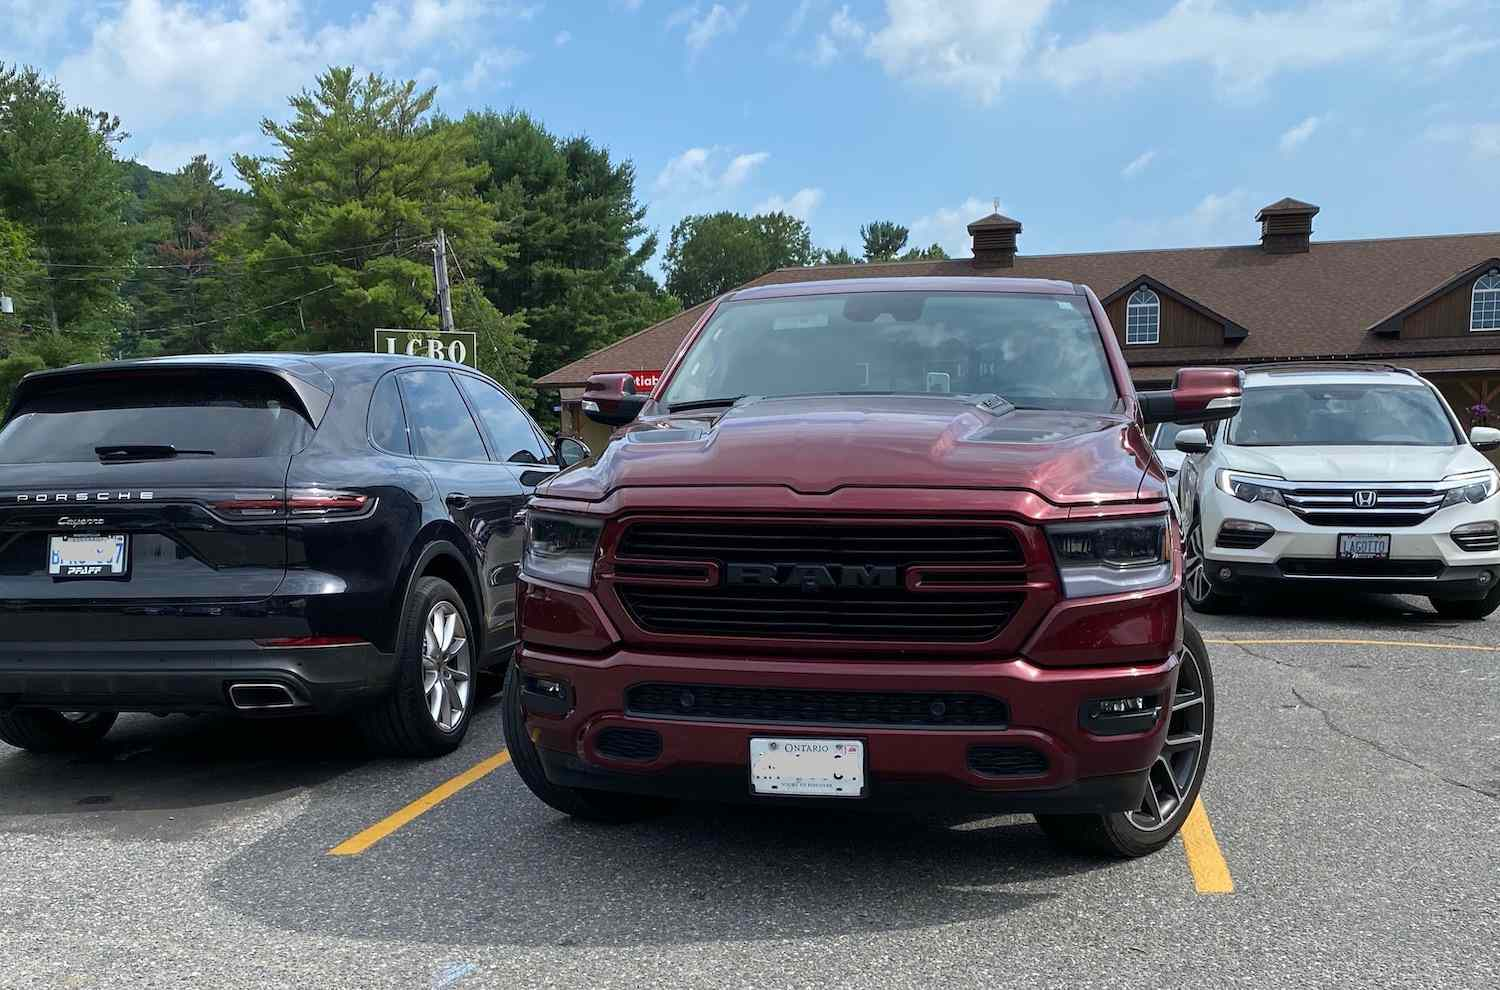 Pickups fill parking space